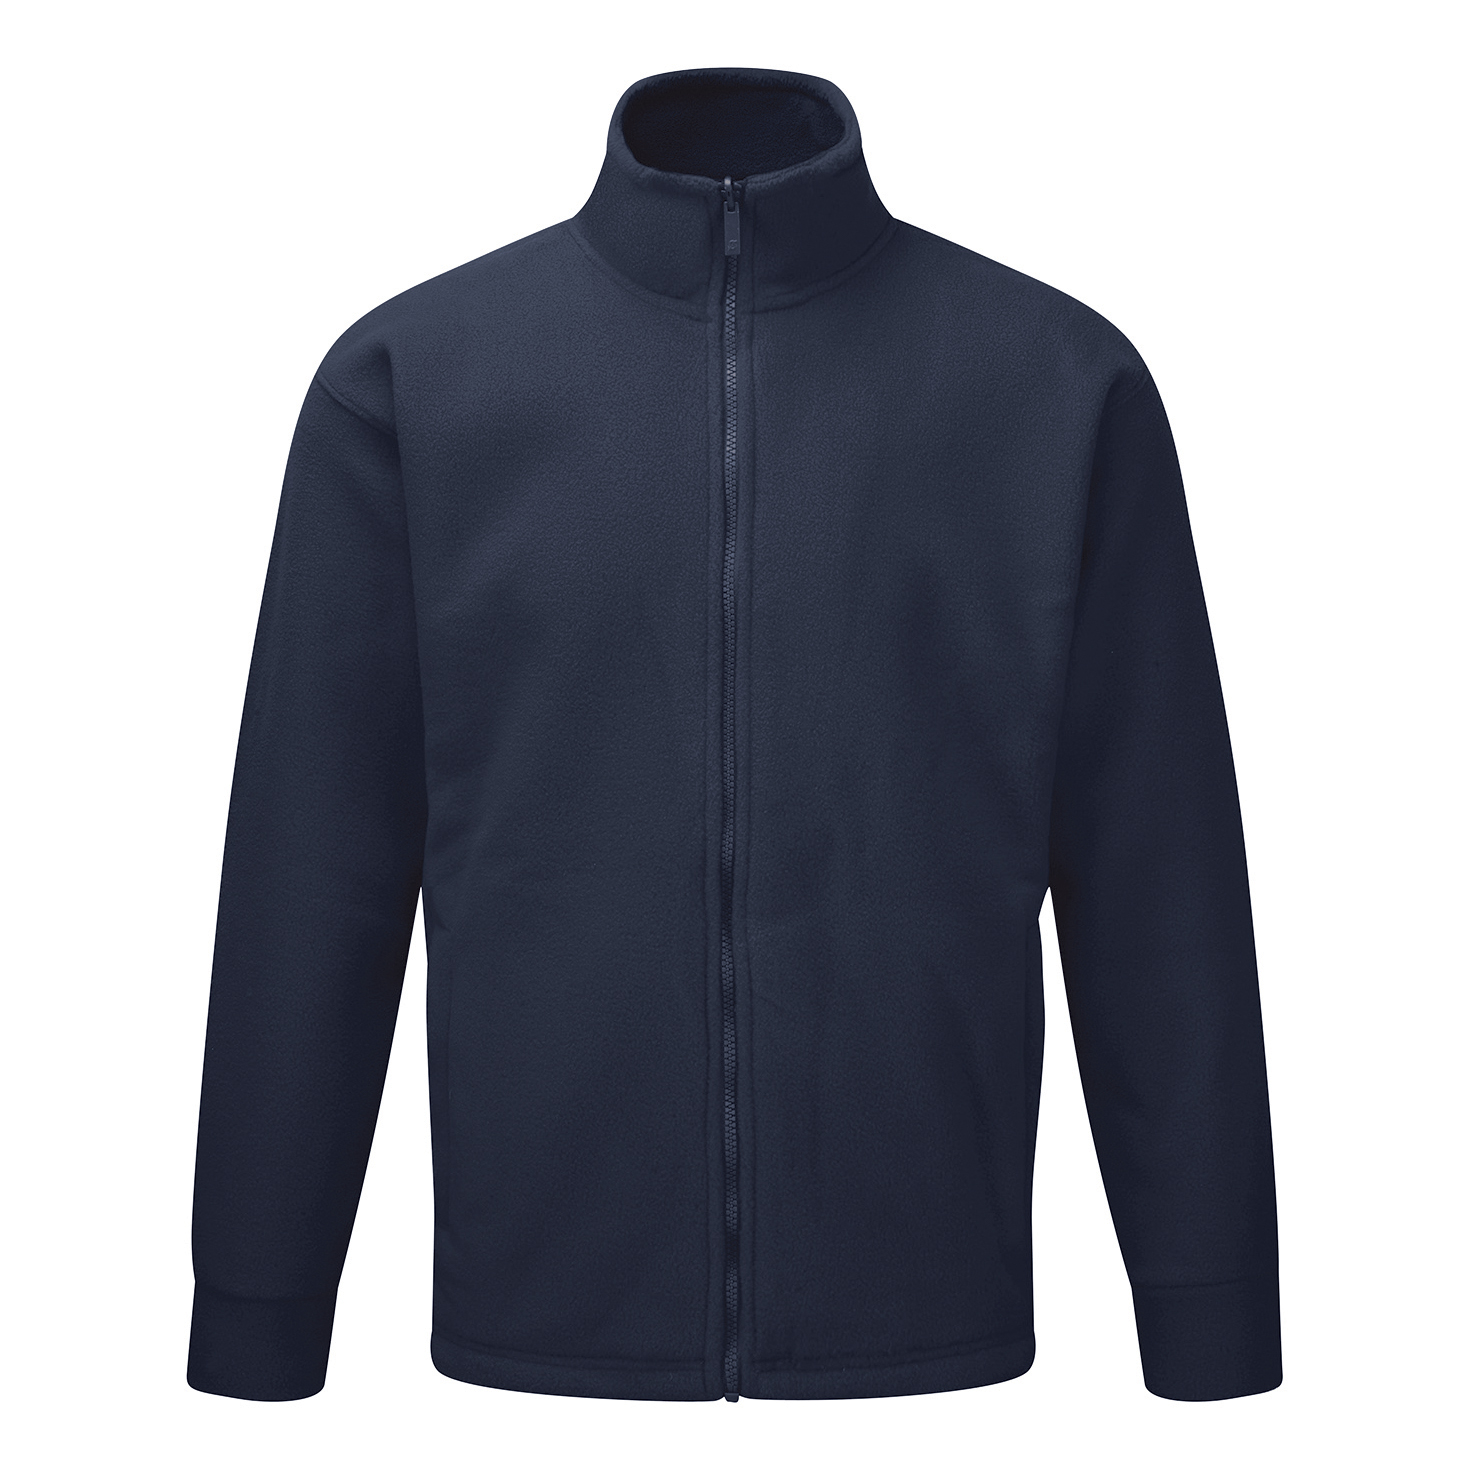 Fleeces Classic Fleece Jacket Elasticated Cuffs Full Zip Front Small Navy Blue Ref FLJNS *1-3 Days Lead Time*